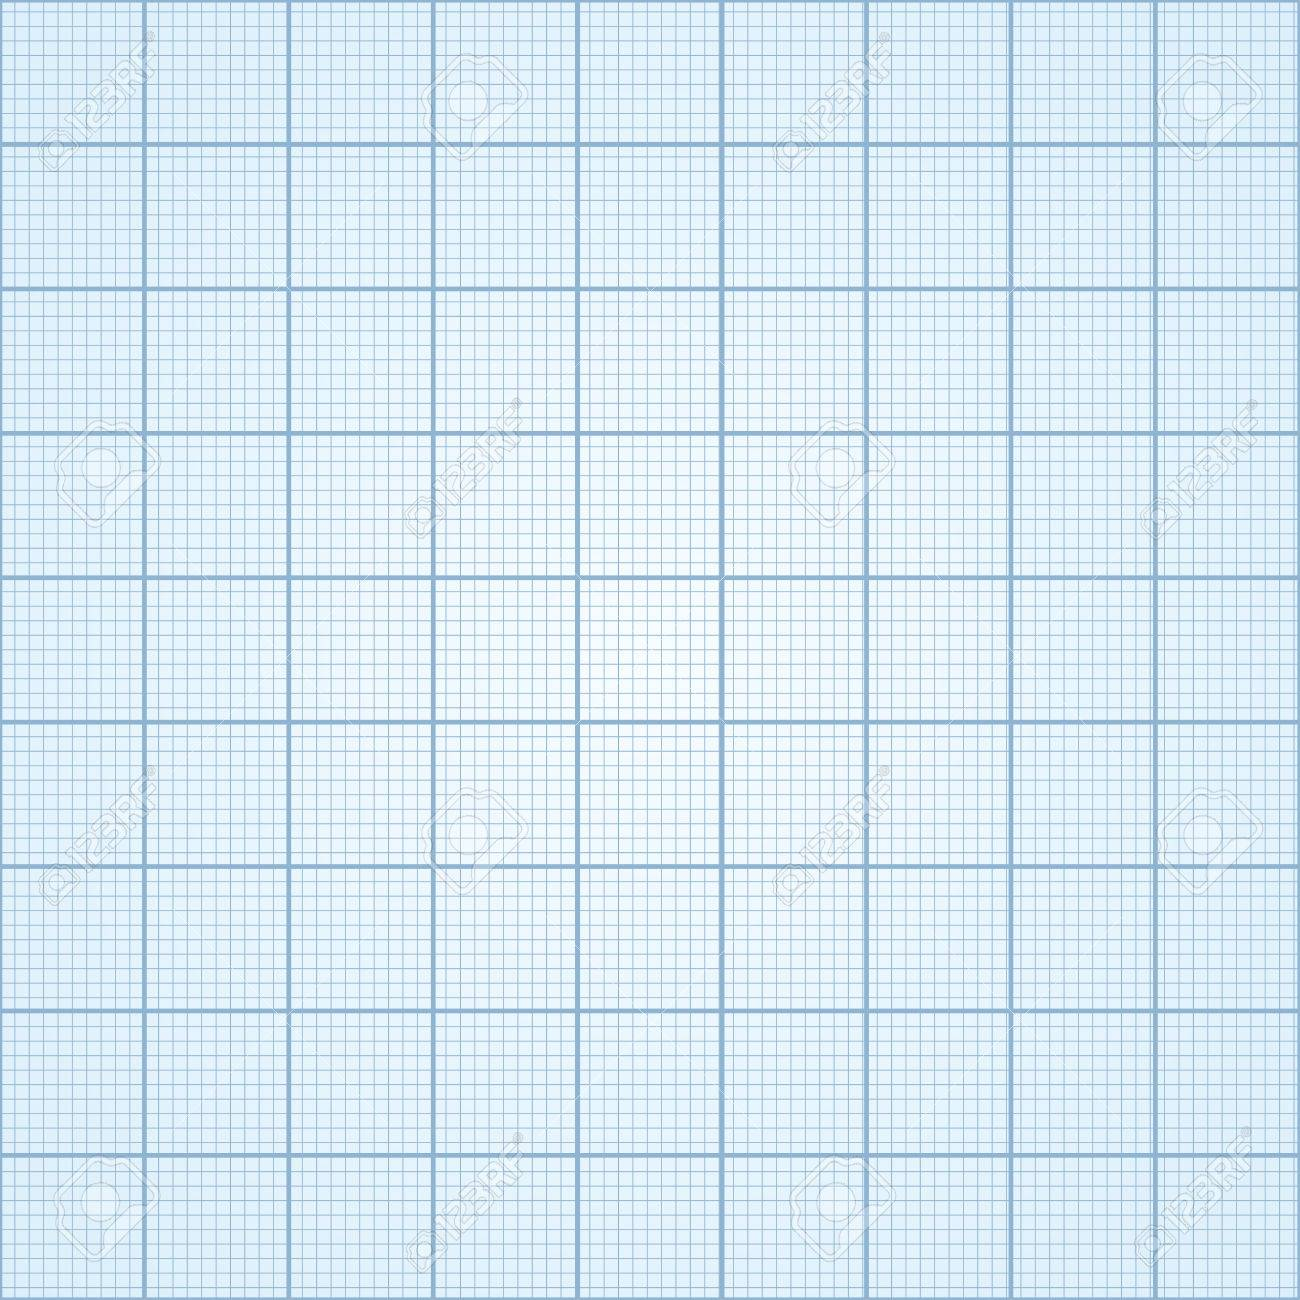 graph paper seamless blue print paper vector illustration rh 123rf com grid paper vector free graph paper vector download